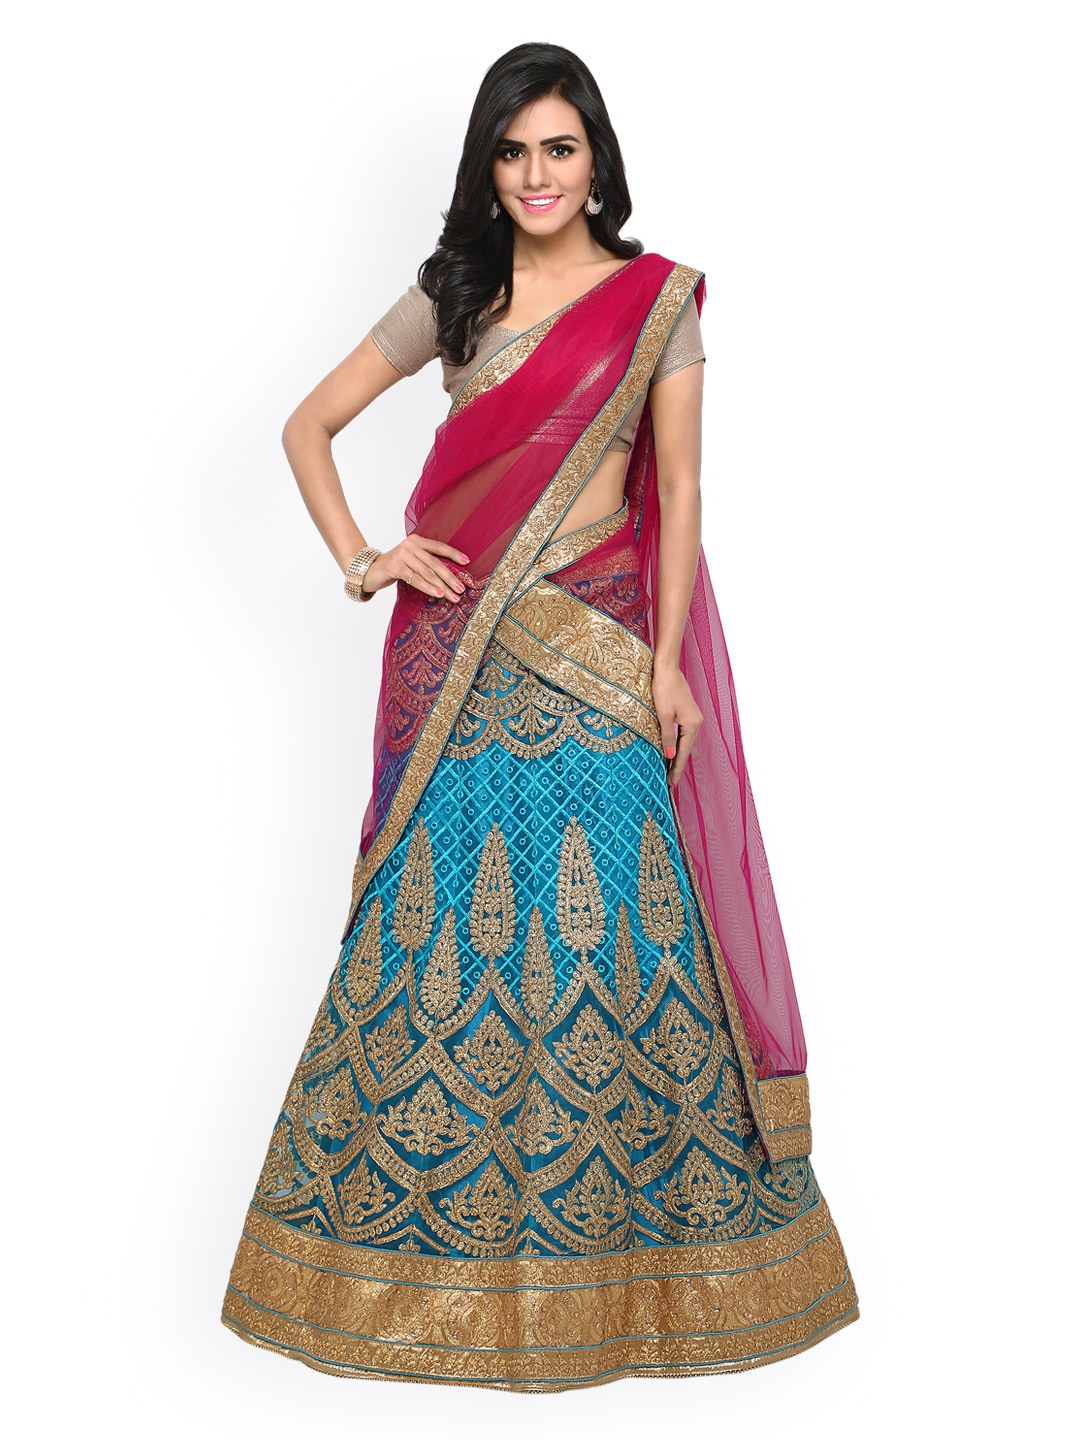 Rajesh Silk Mills Blue & Beige Embroidered Unstitched Lehenga Choli with Dupatta image